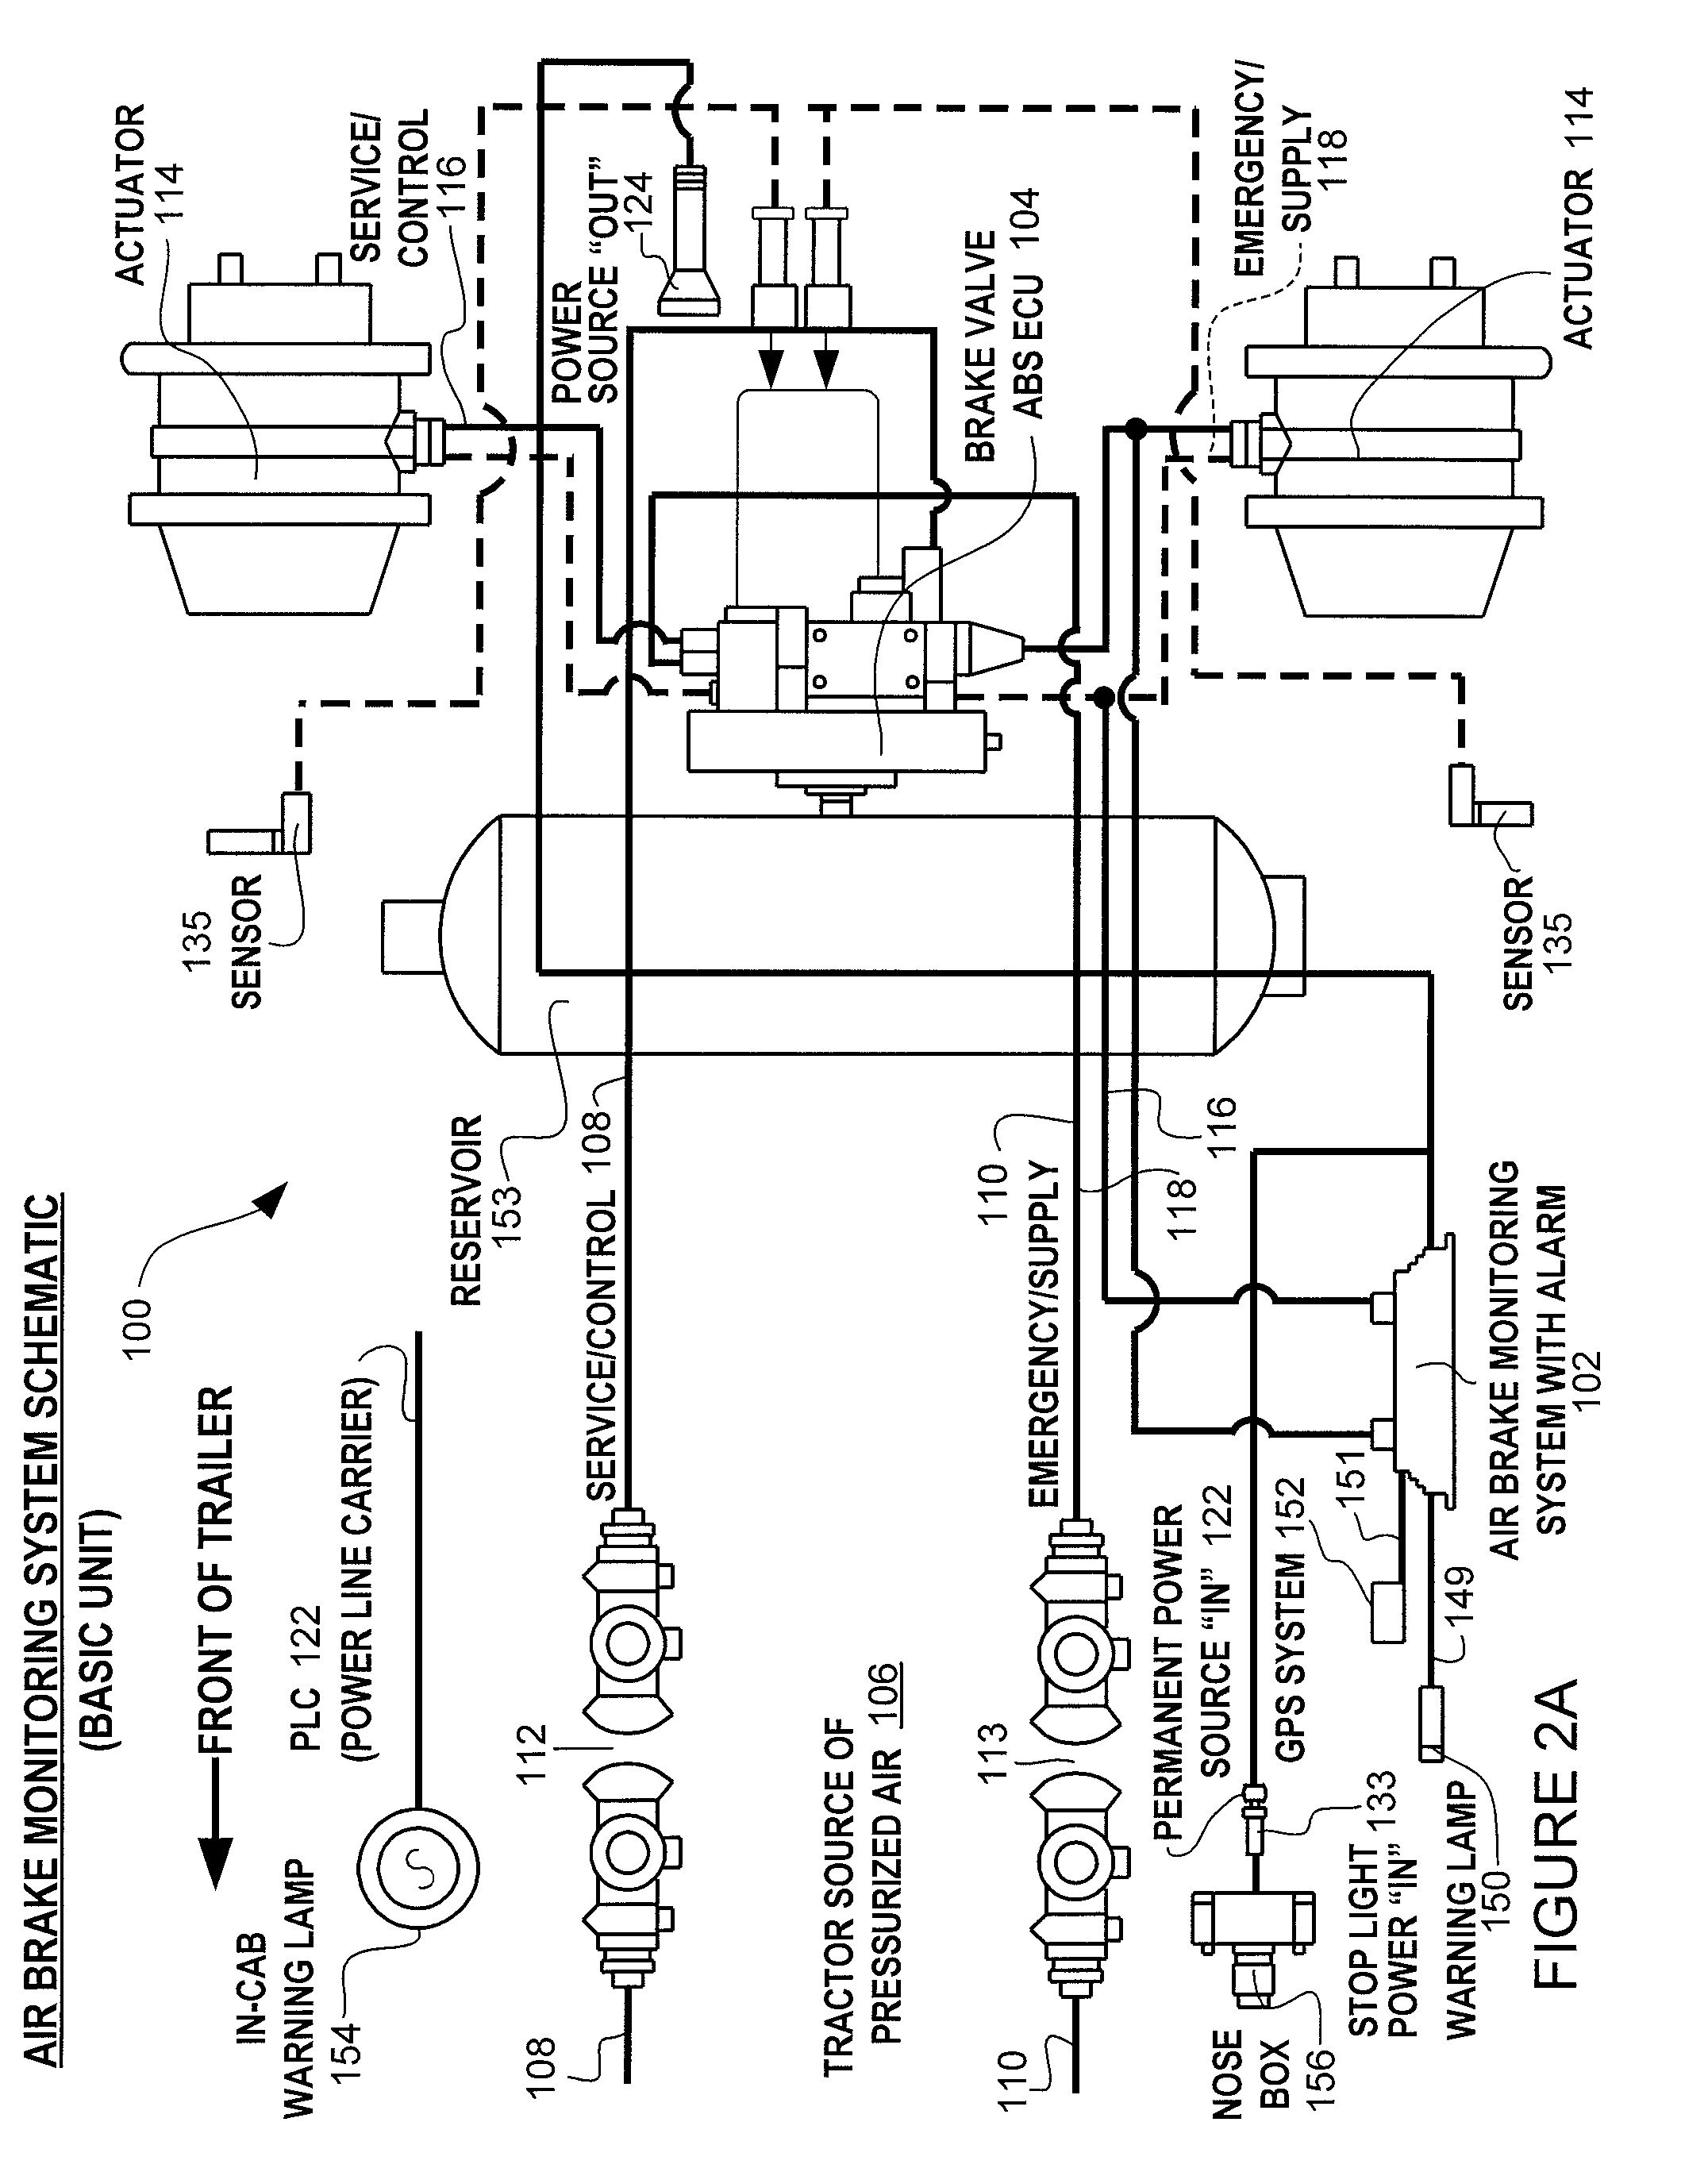 Wiring Manual PDF: 110v Schematic Wiring Diagram Free